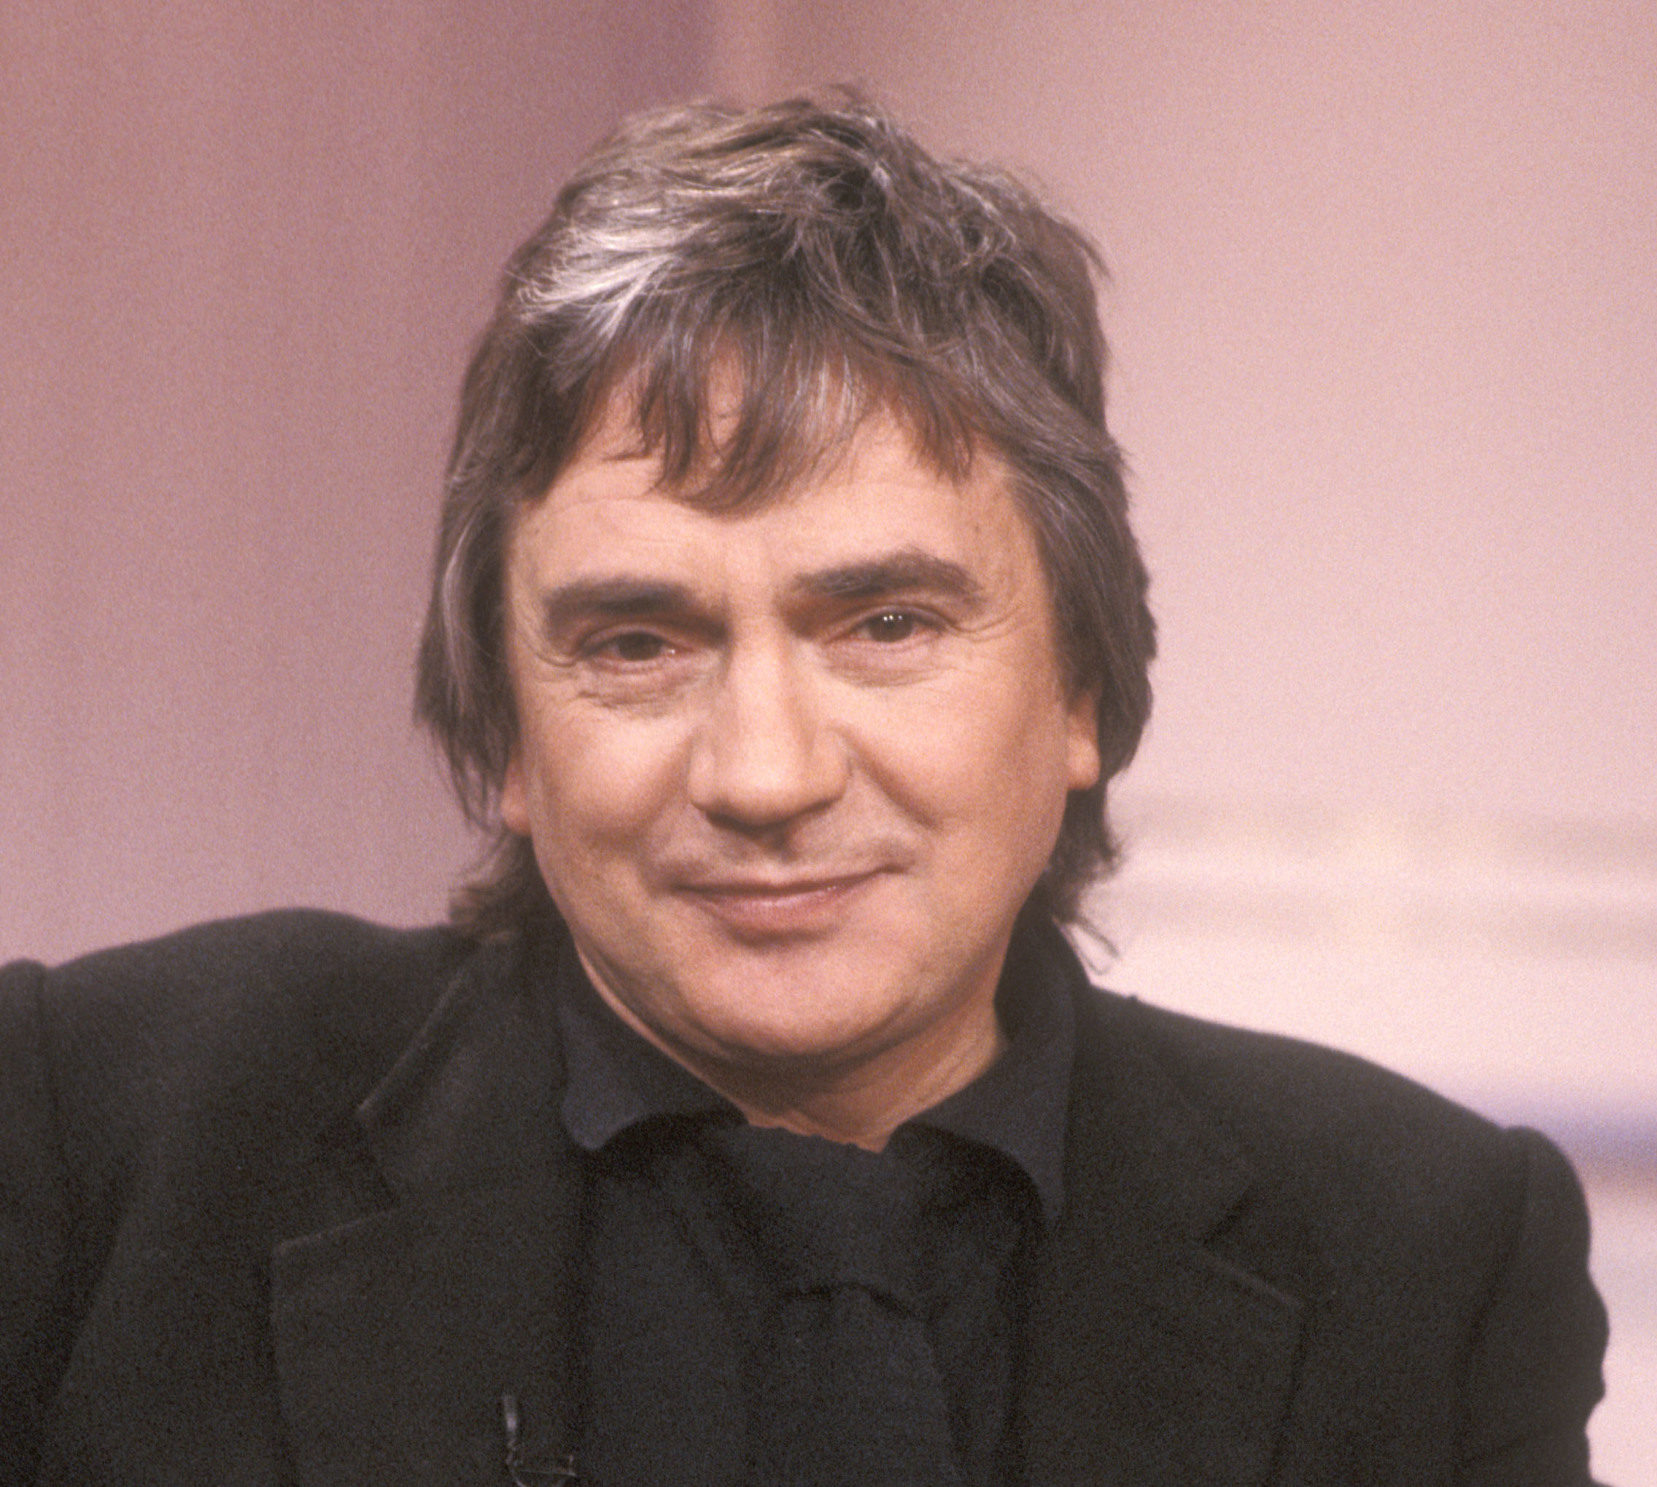 dudley moore e1610456966154 20 Things You Never Knew About Dudley Moore